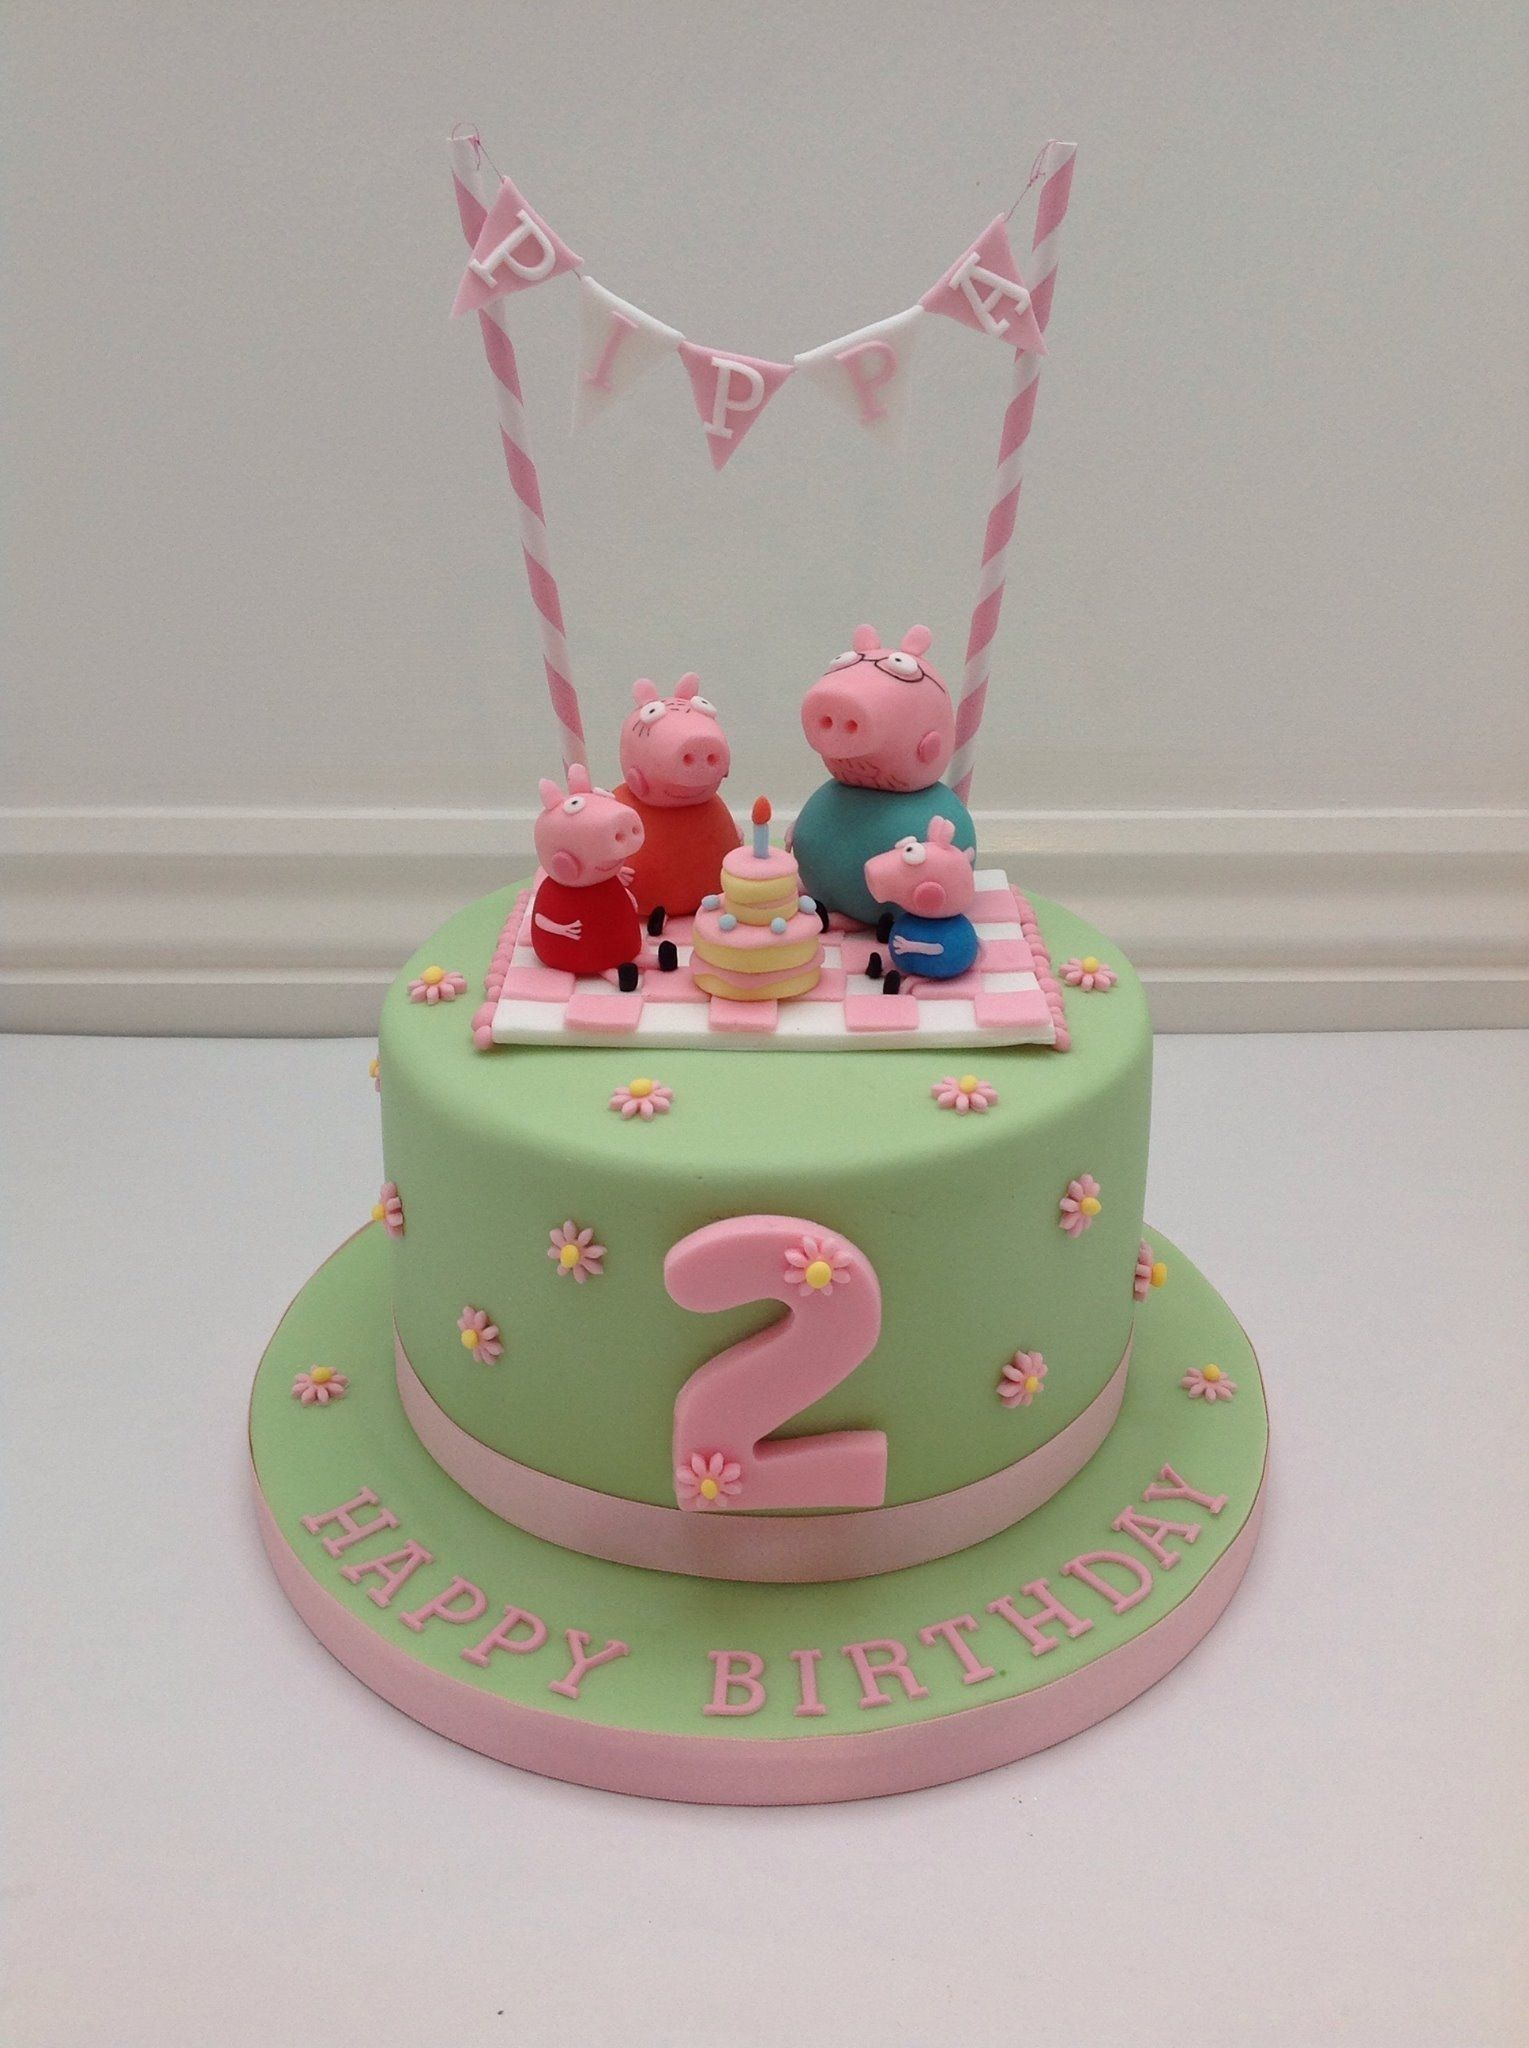 Peppa Pig Birthday Cake A Peppa Pig Picnic And Bunting Cake Fancy Fondant Party Ideas Entitlementtrap Com Peppapig In 2020 Kuchen Kindergeburtstag Geburtstagskuchen Kind Geburtstagskuchen Kinder